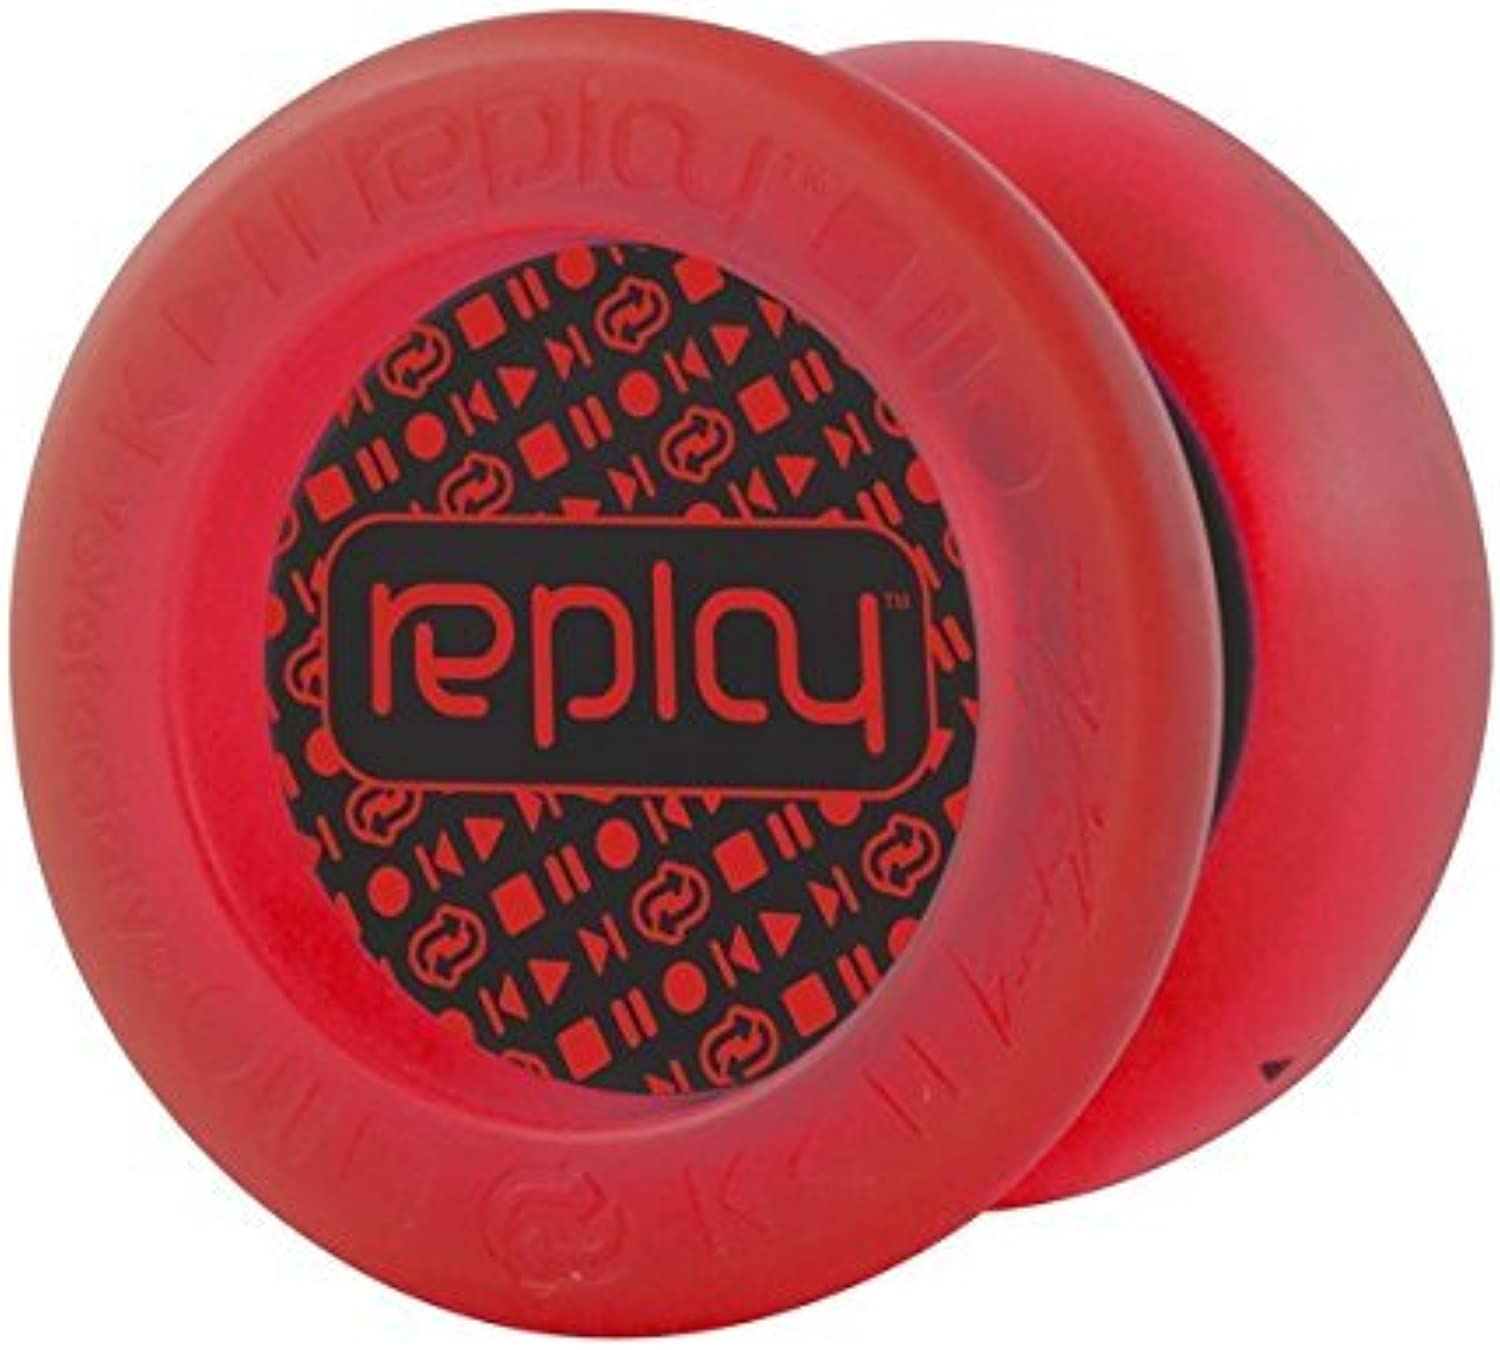 Replay Red Responsive Yo Yo Beginner Type Gentry Stein Edition From The YOYOFACTORY